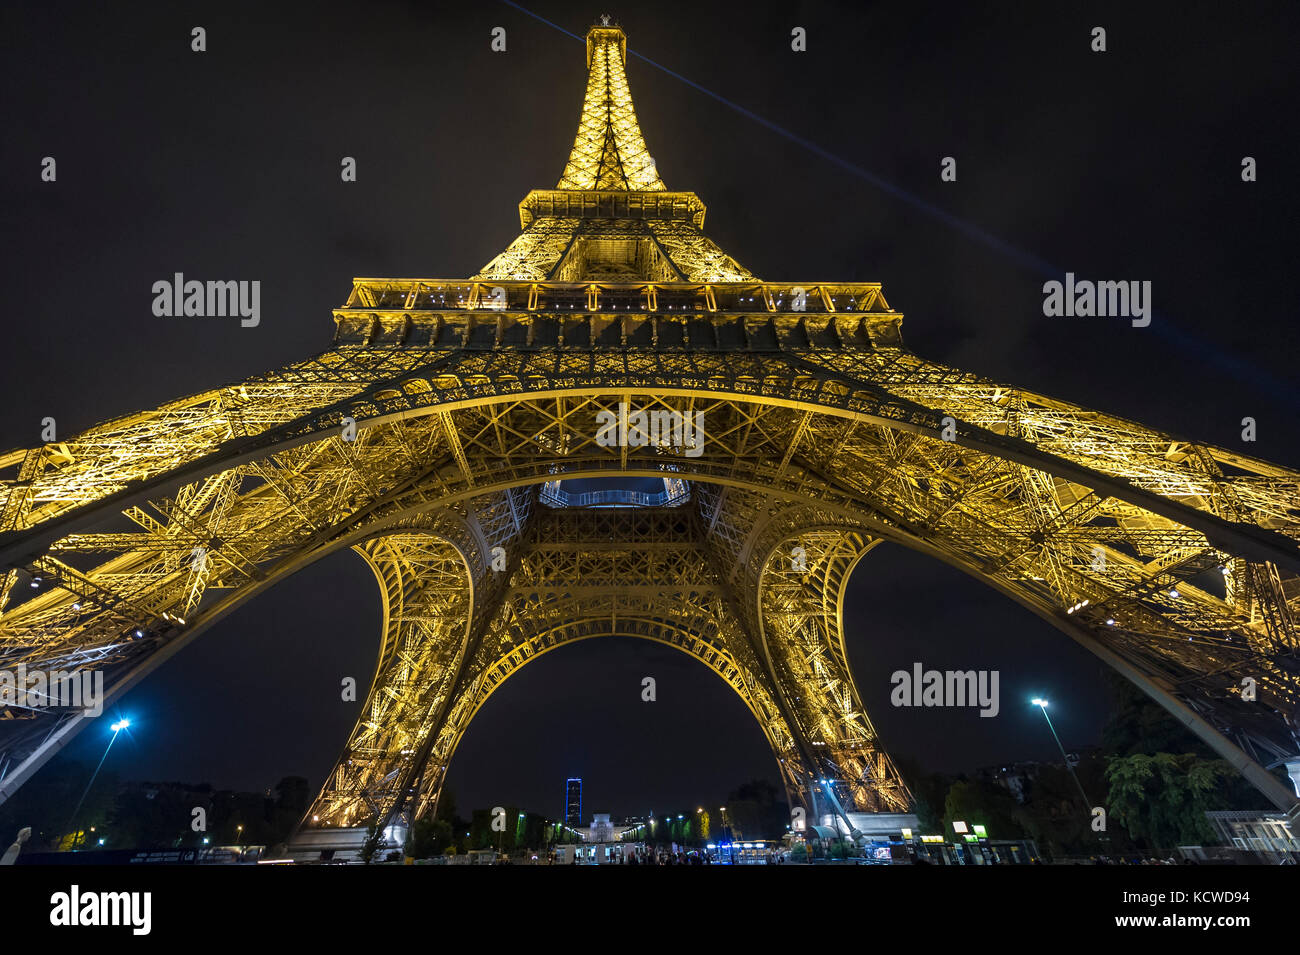 View of the Eiffel Tower from below, Paris, France, Europe - Stock Image